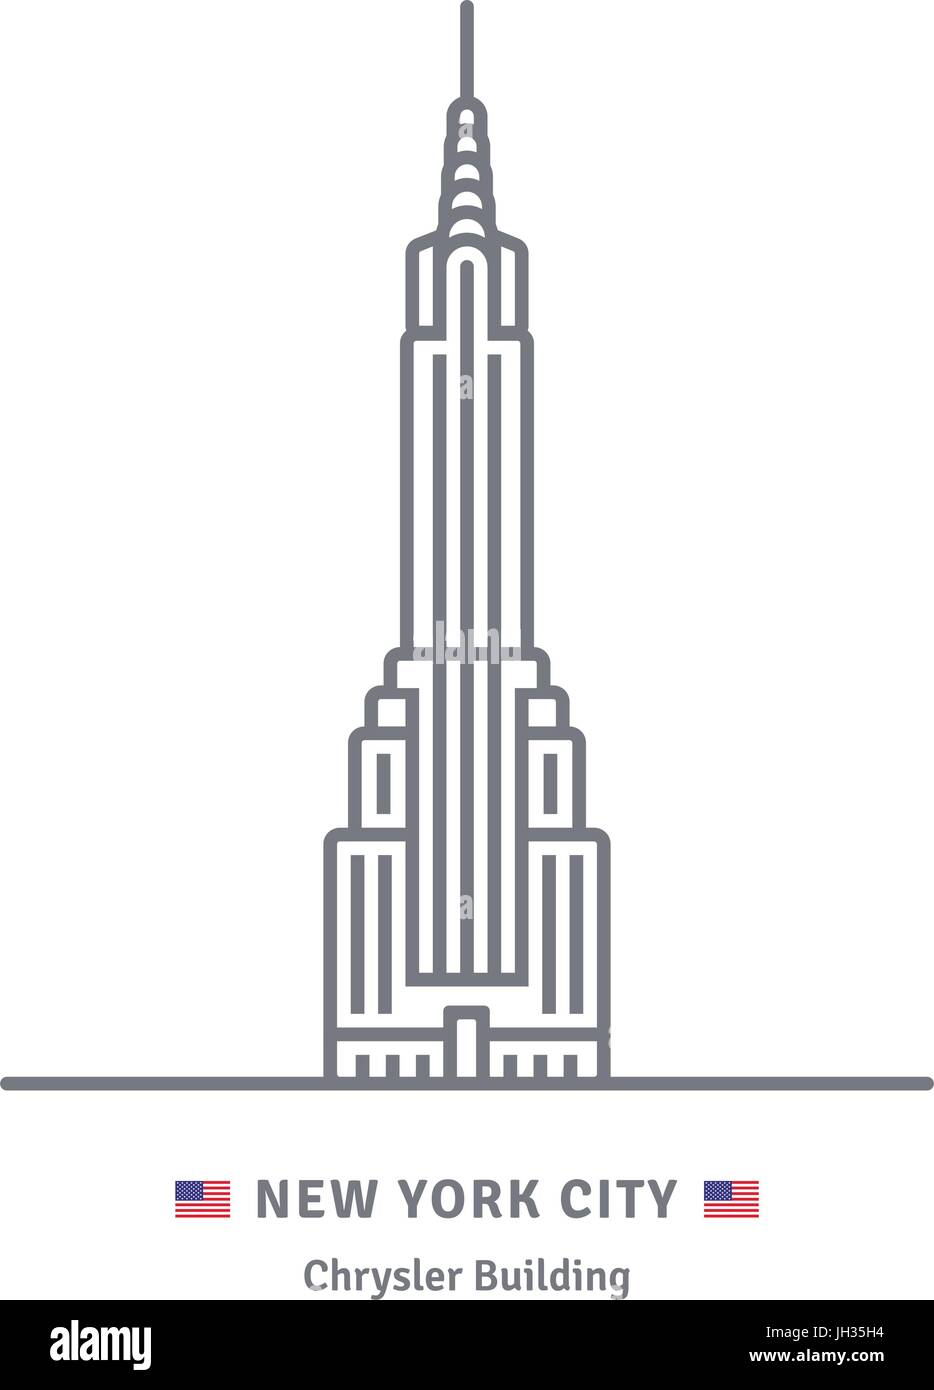 New York City line icon. Chrysler building and US flag vector illustration. - Stock Vector